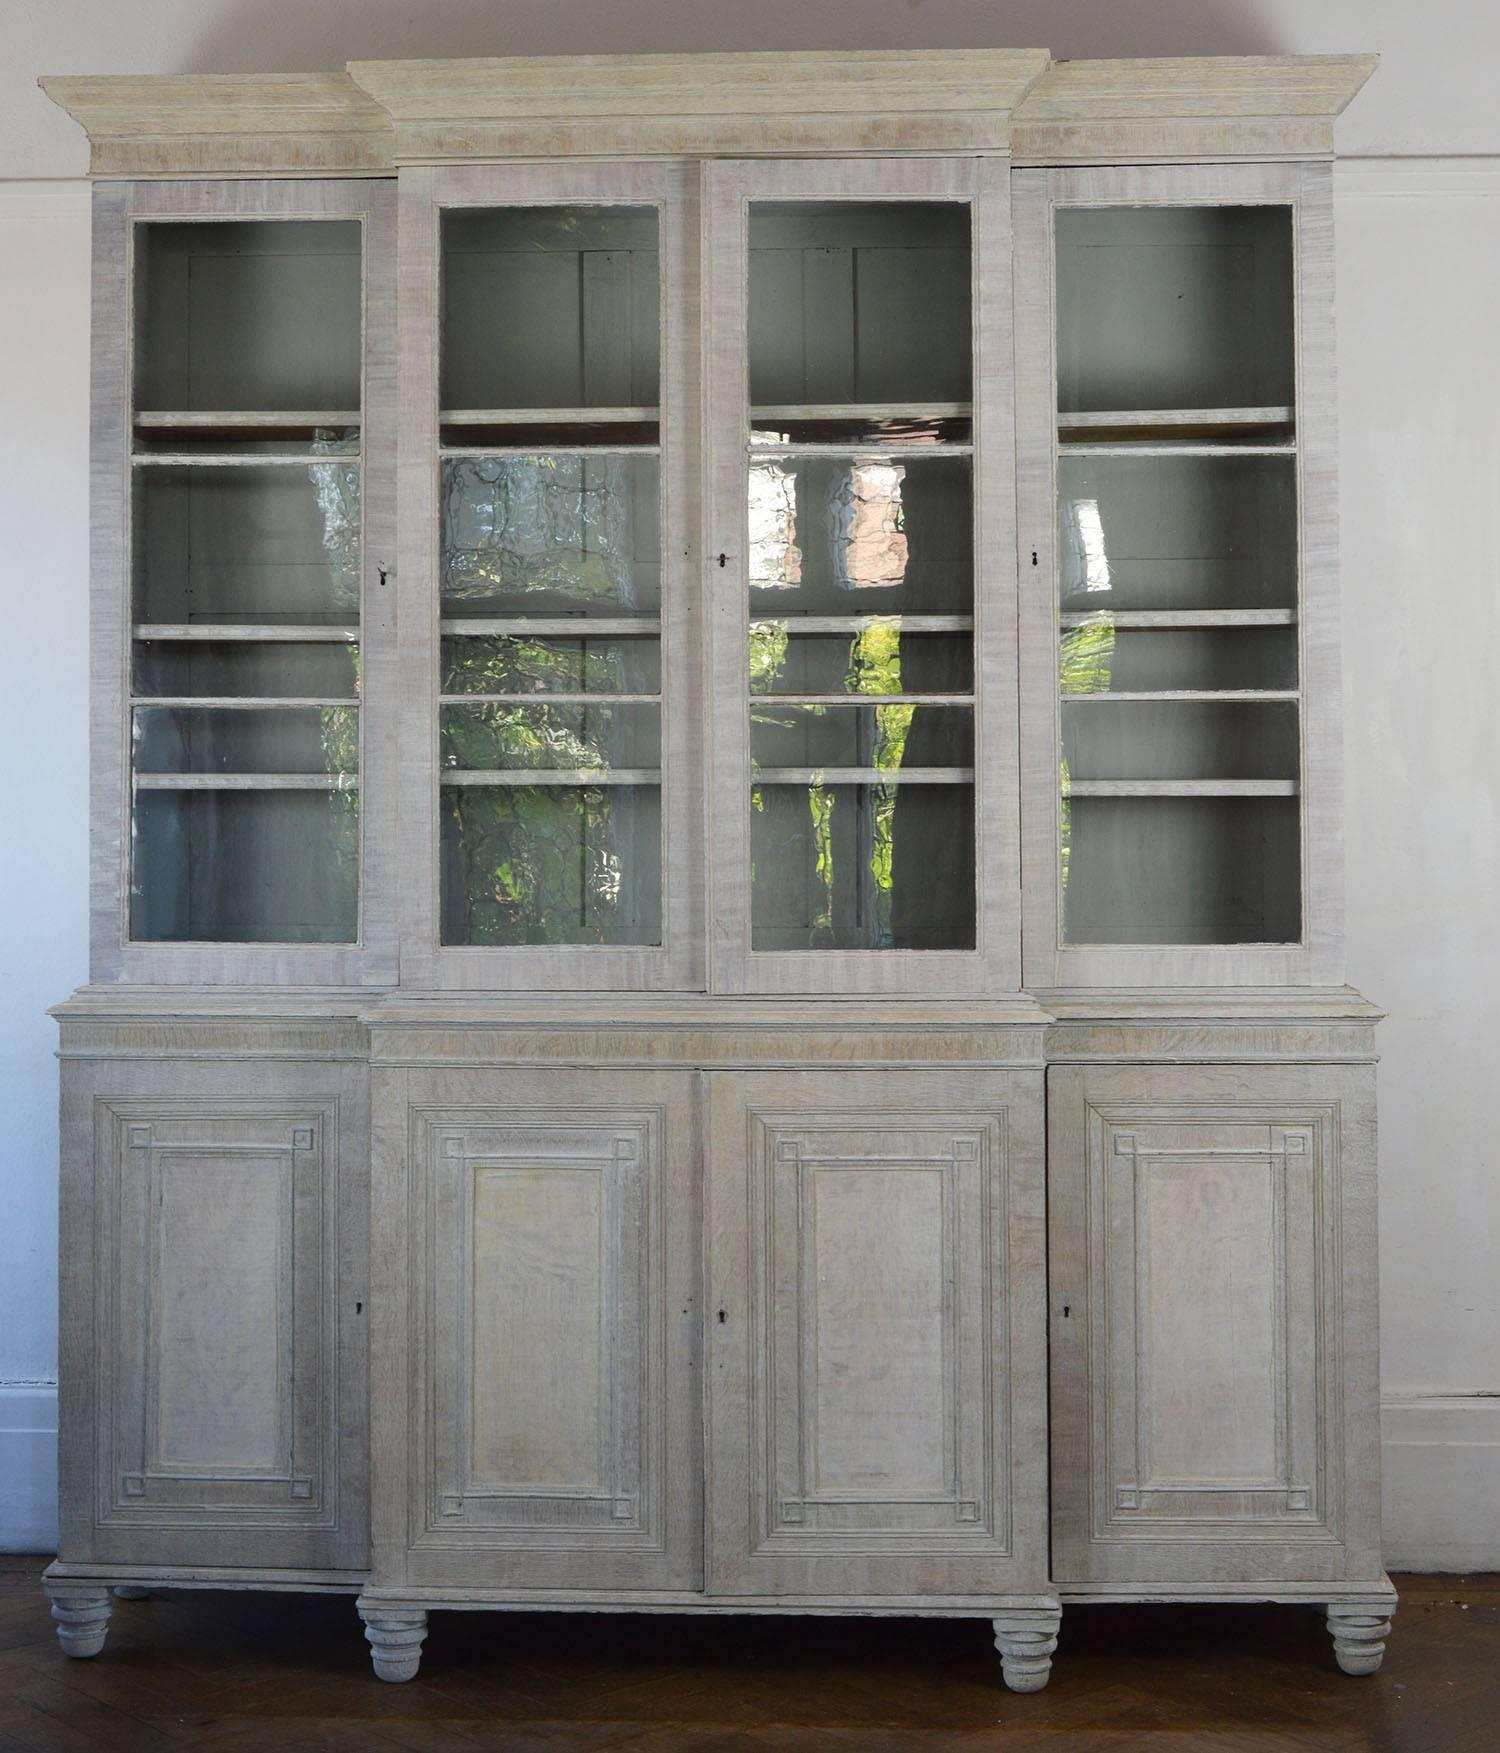 Wonderful Limed Oak Cabinet Or Bookcase. Elegant Proportions Typical Of  Georgian Furniture. Another Great